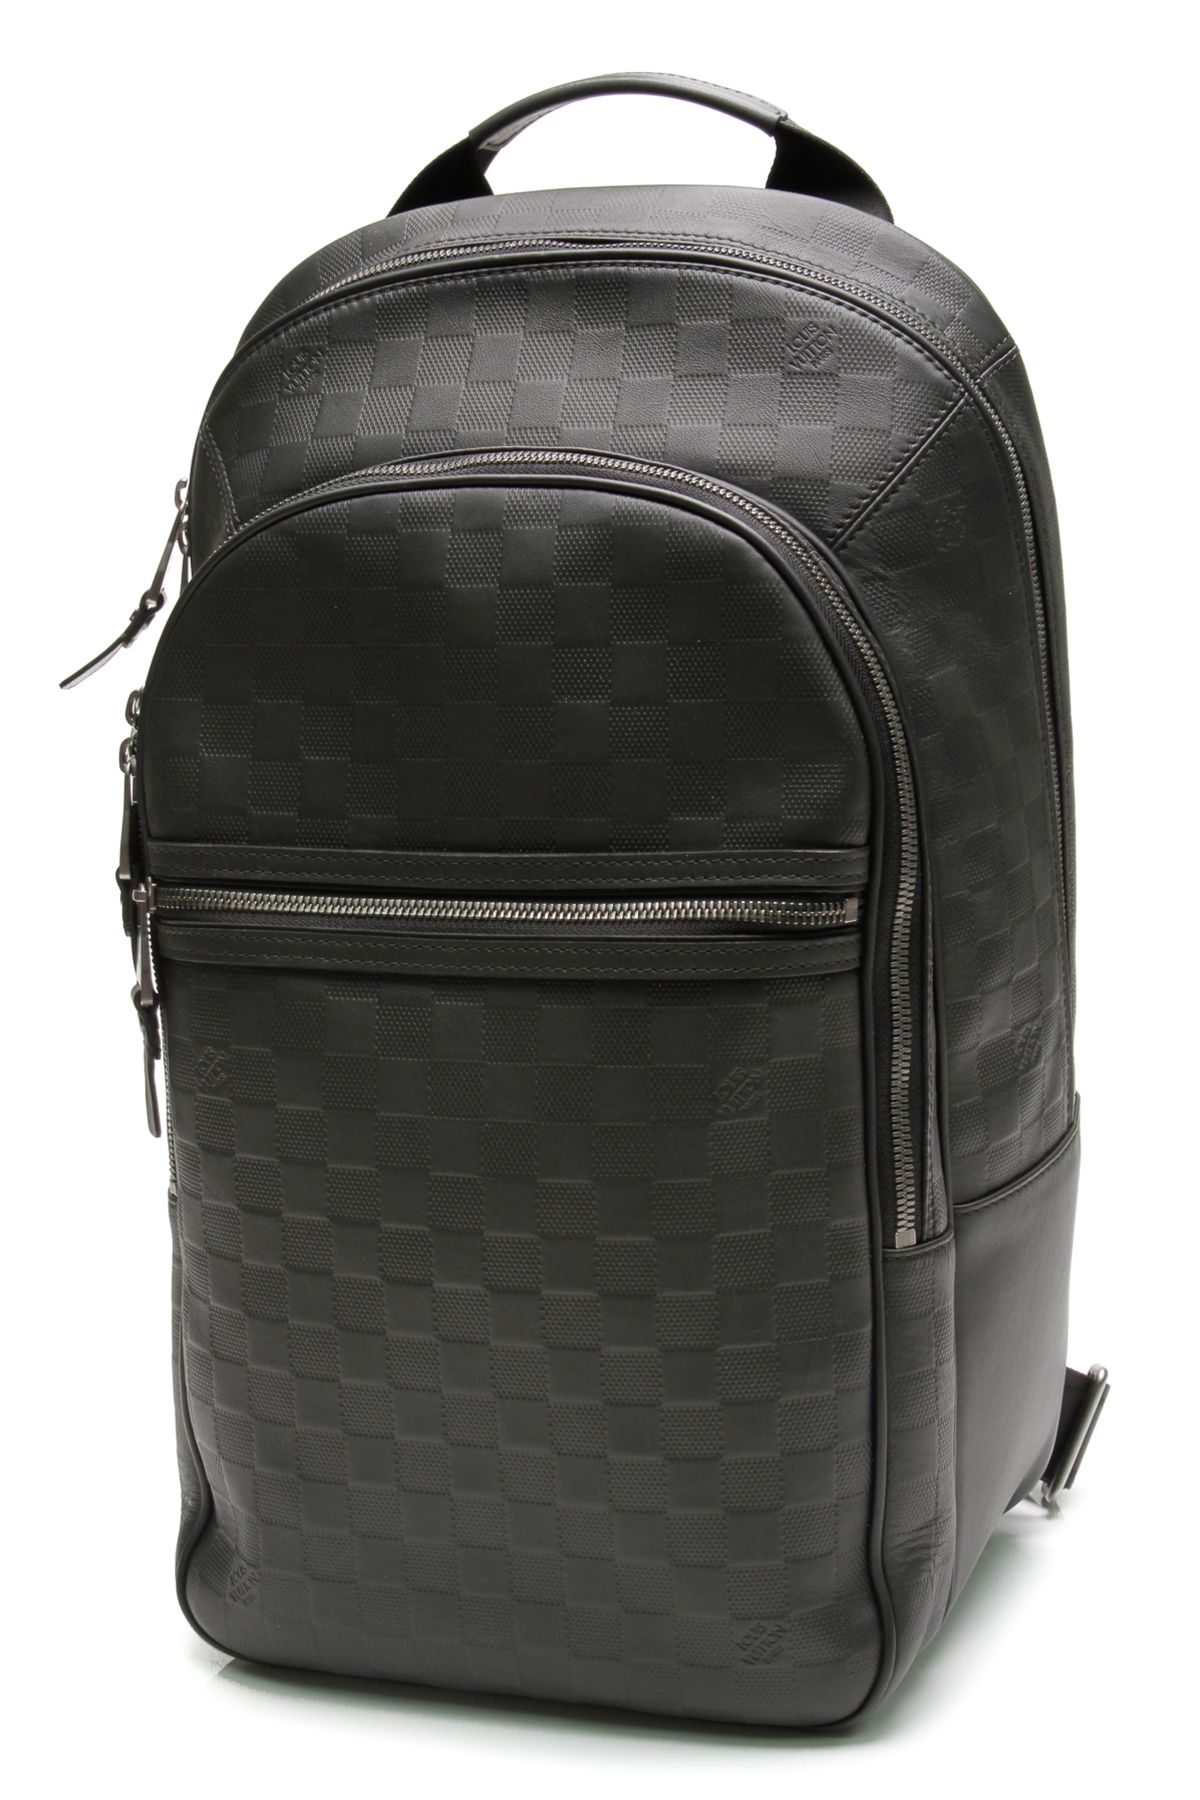 bc174808613d Louis Vuitton Onyx Damier Infini Leather Michael Backpack